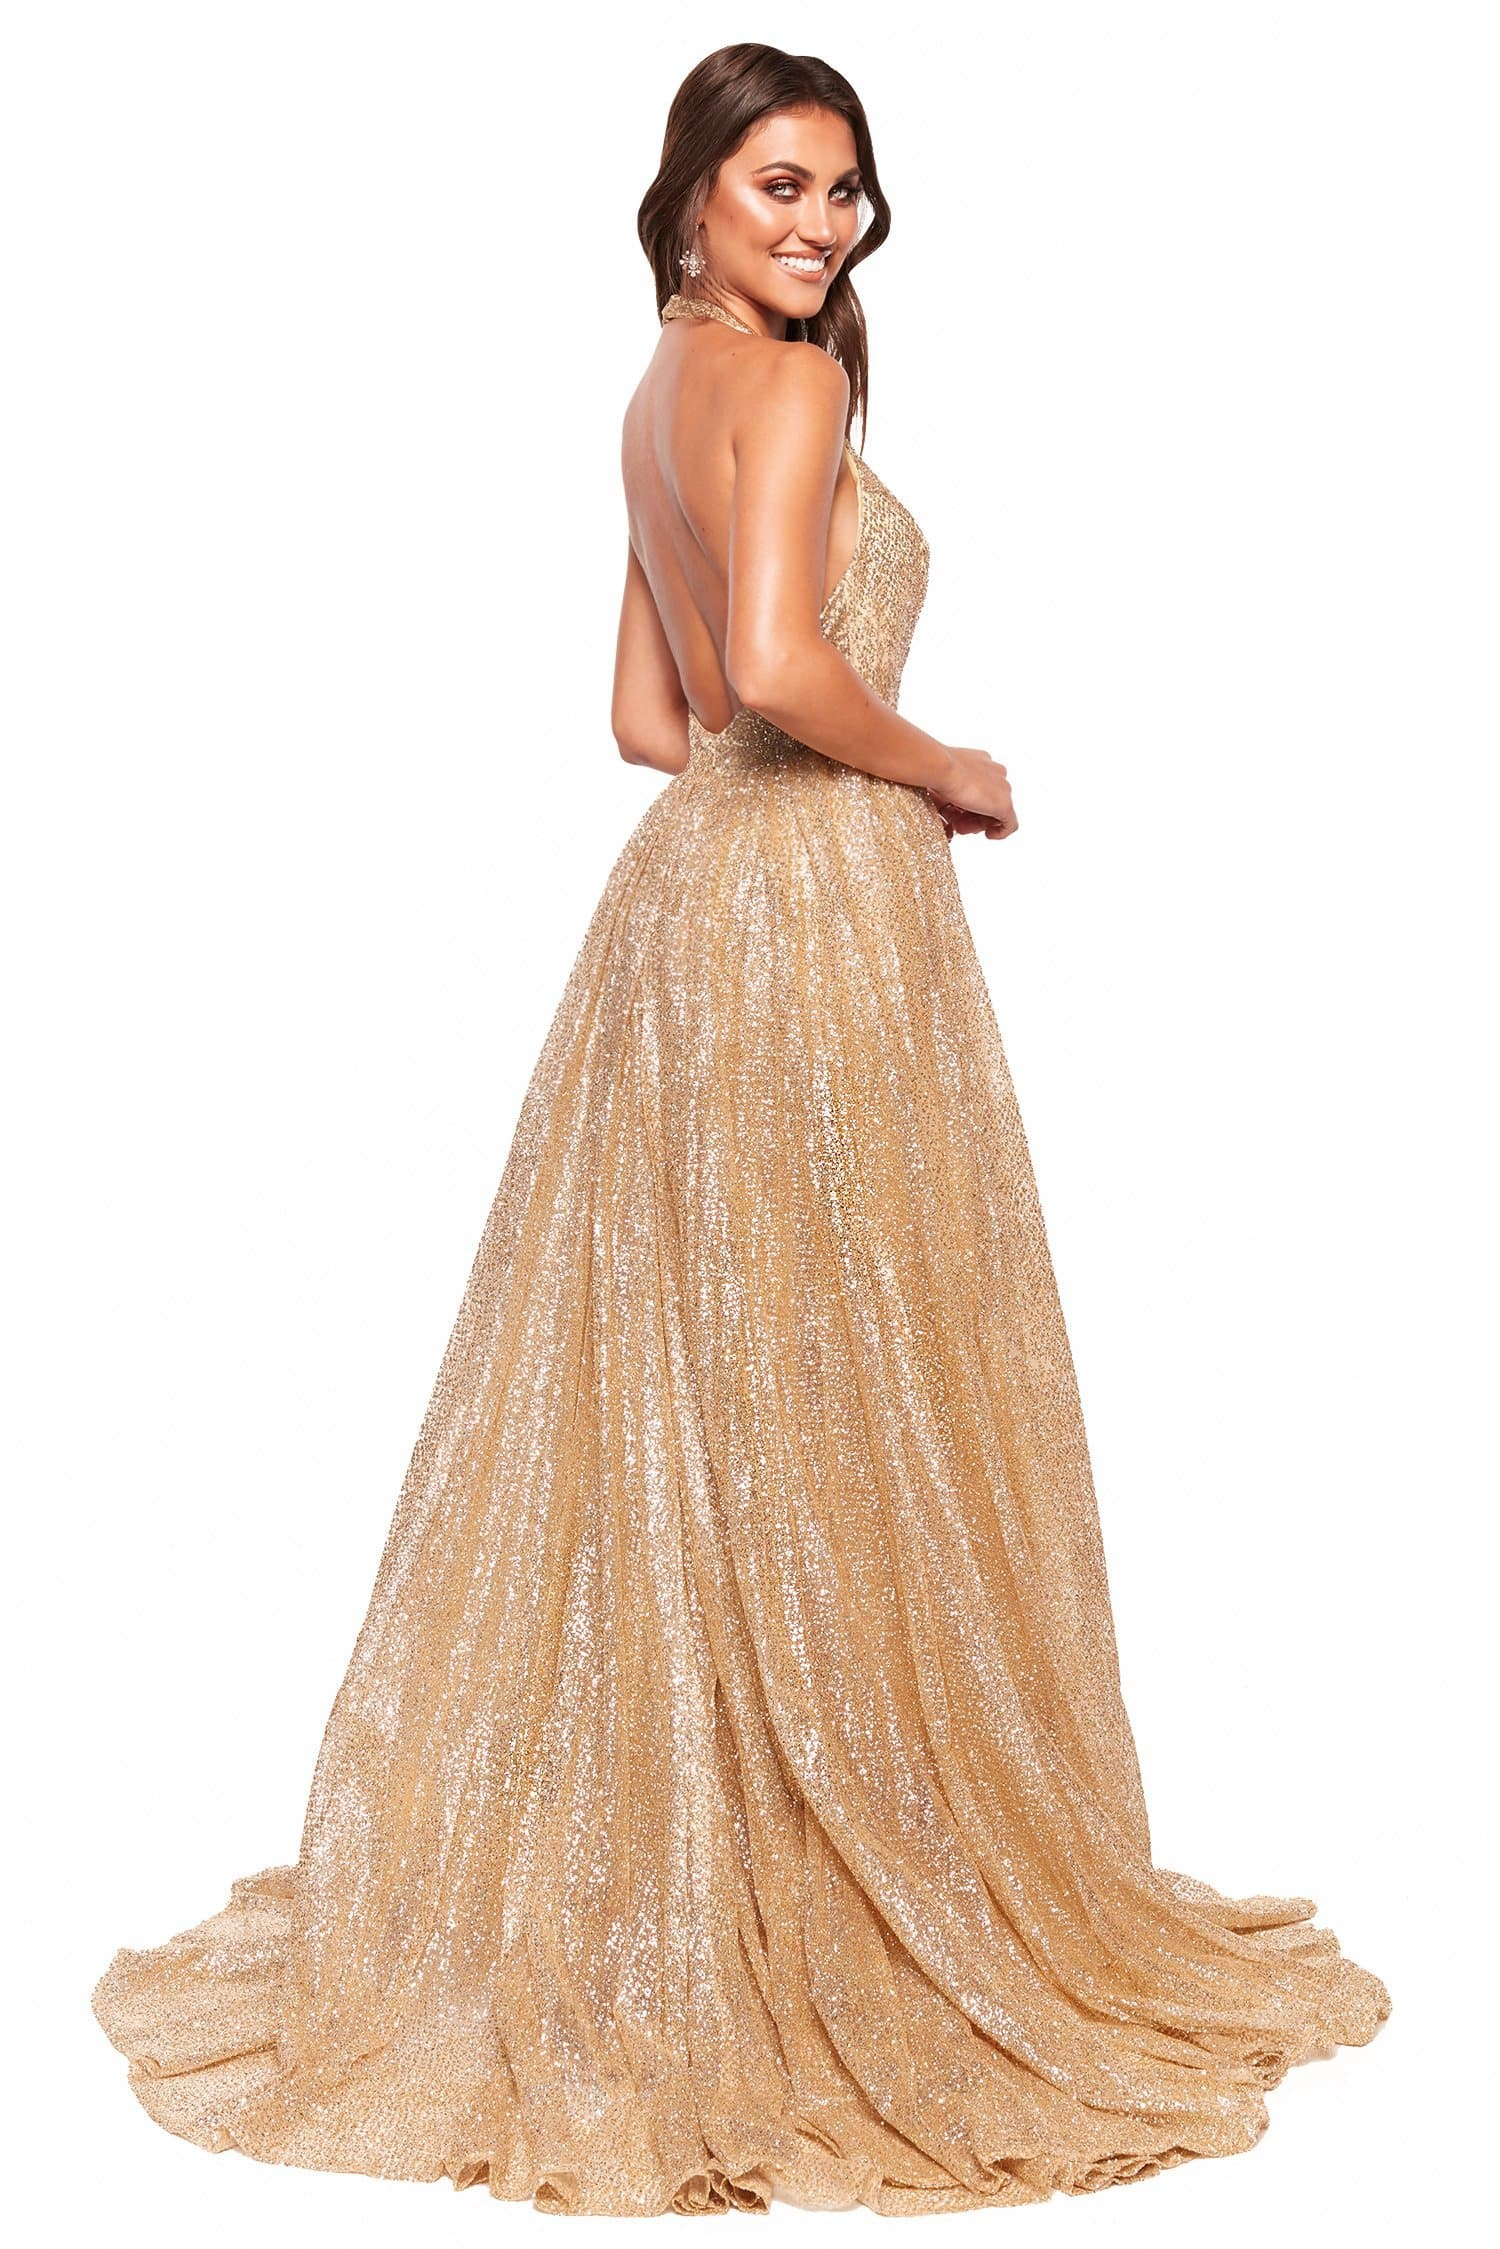 A&N Luxe Saina - Gold Glitter A-Line Gown with Plunge Neck & Low Back